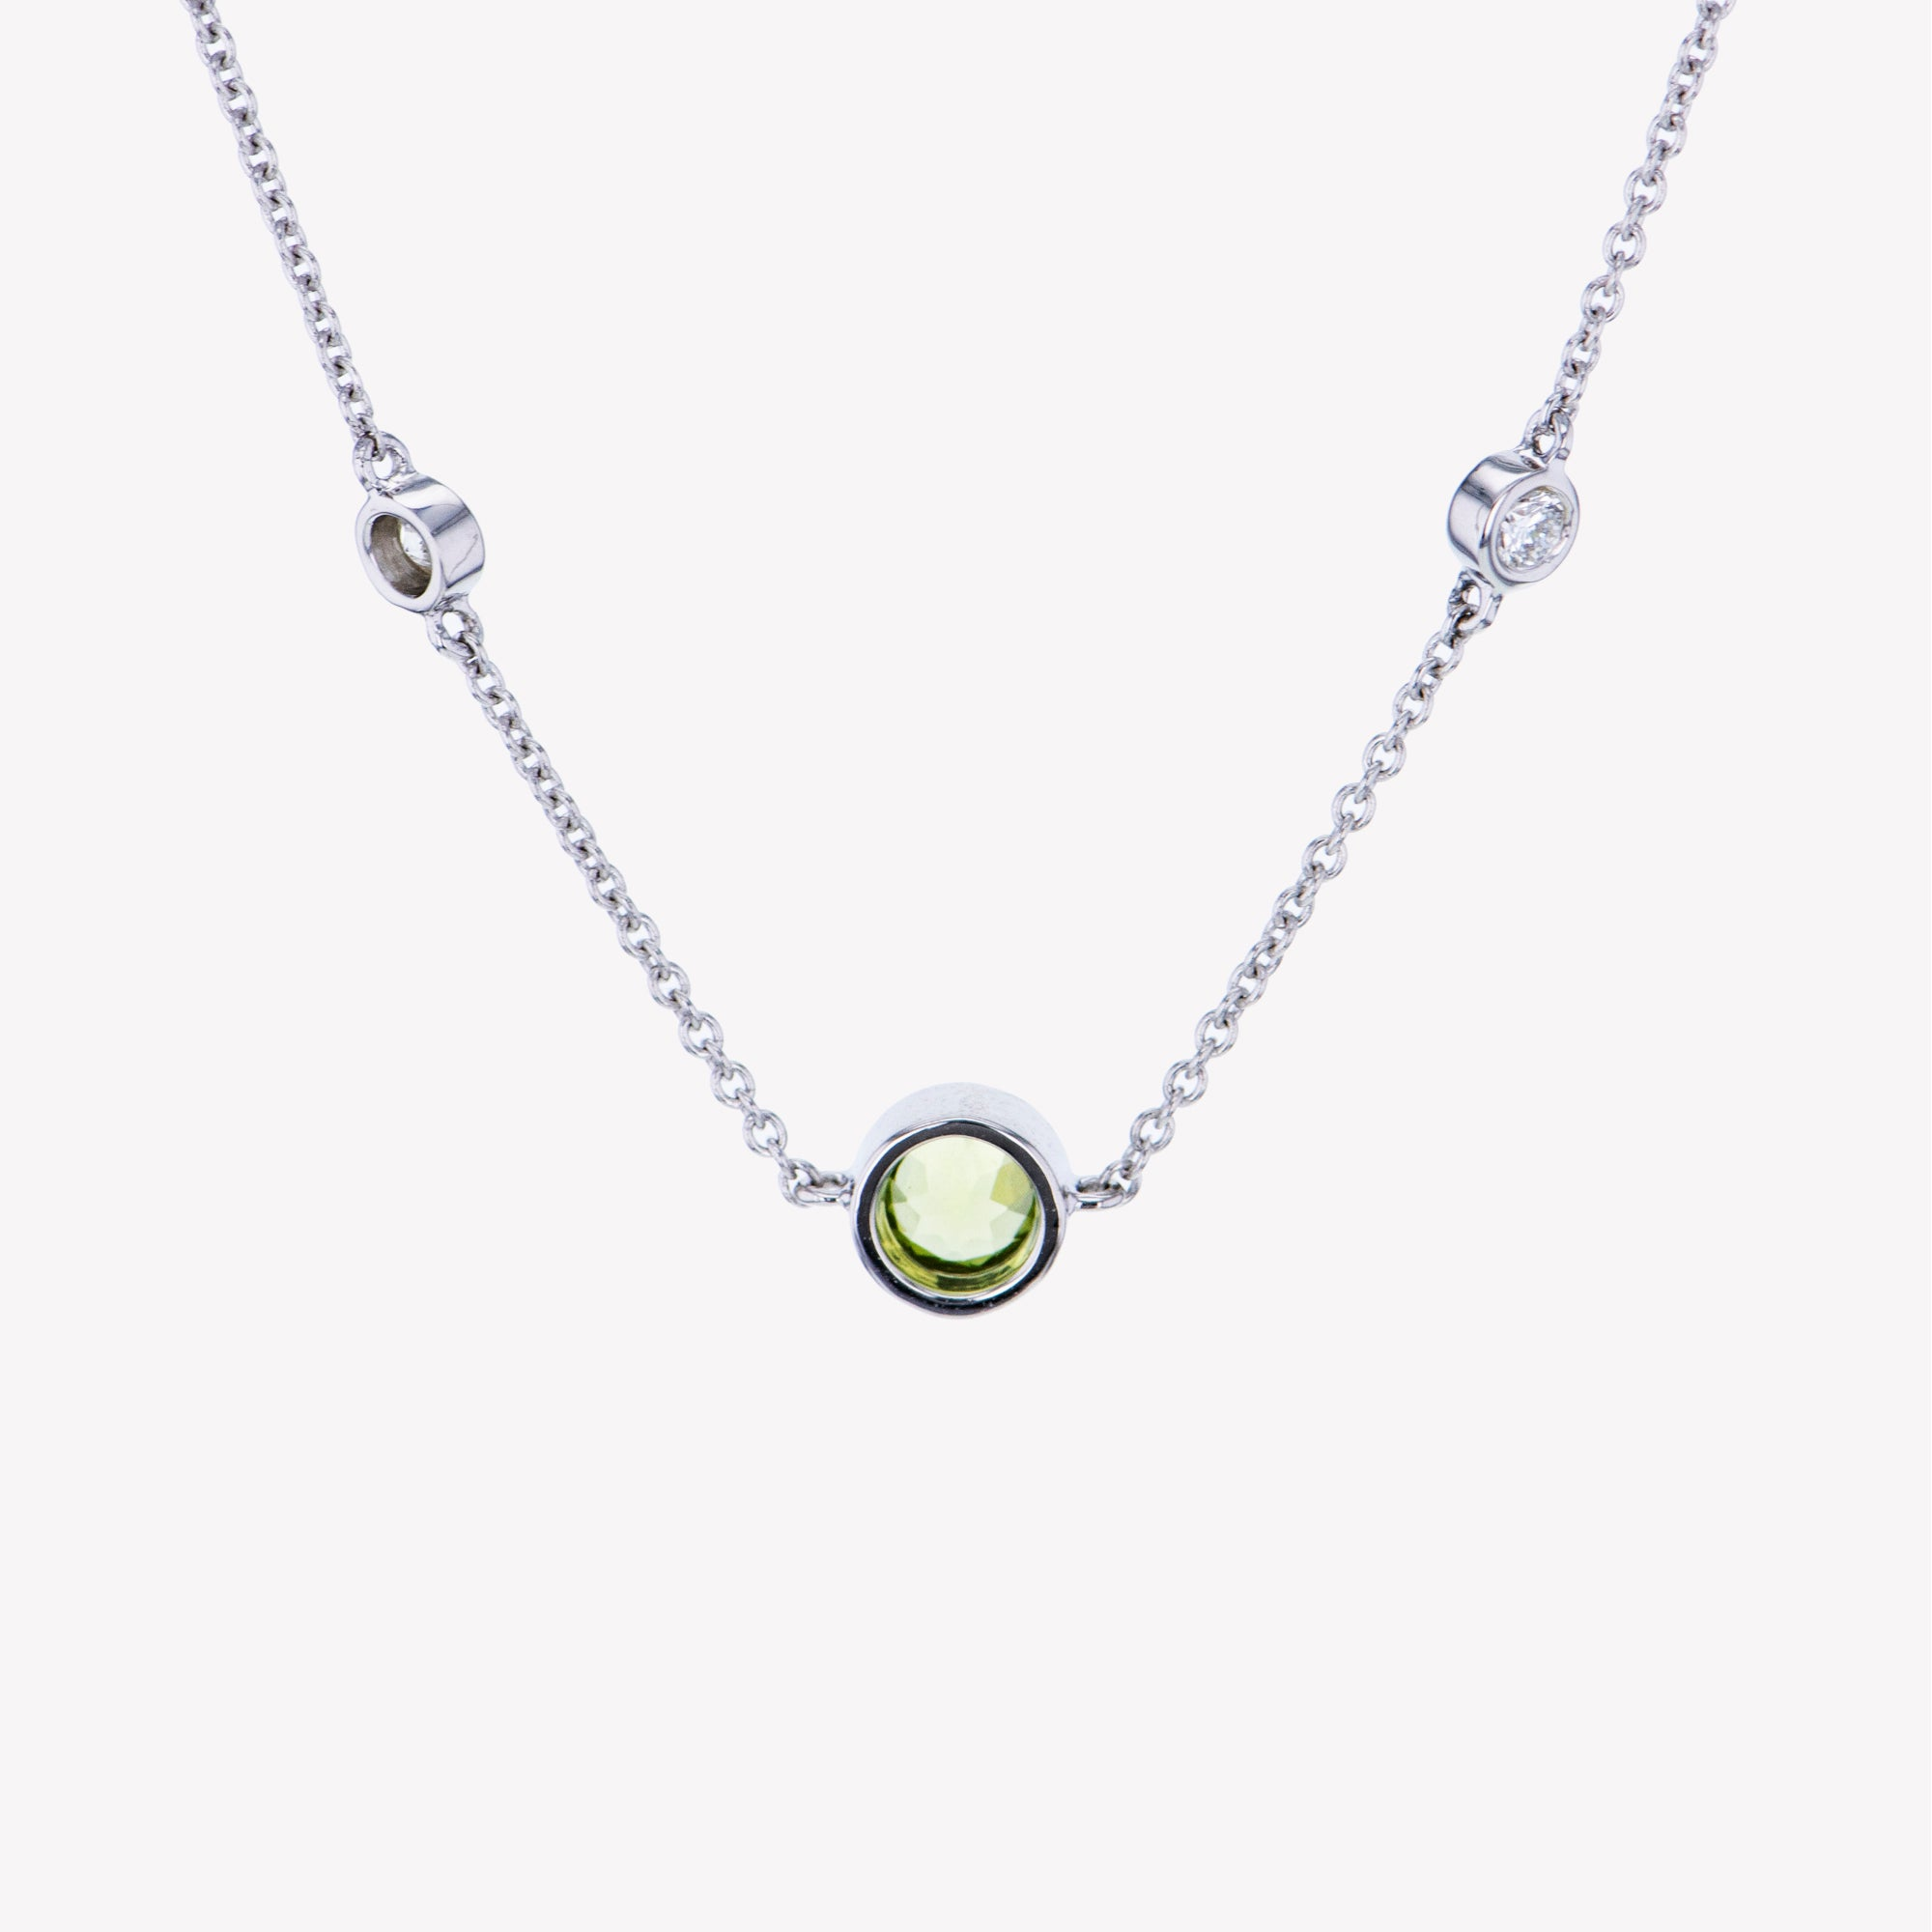 18K W/G Peridot Diamond Pendant With Chain